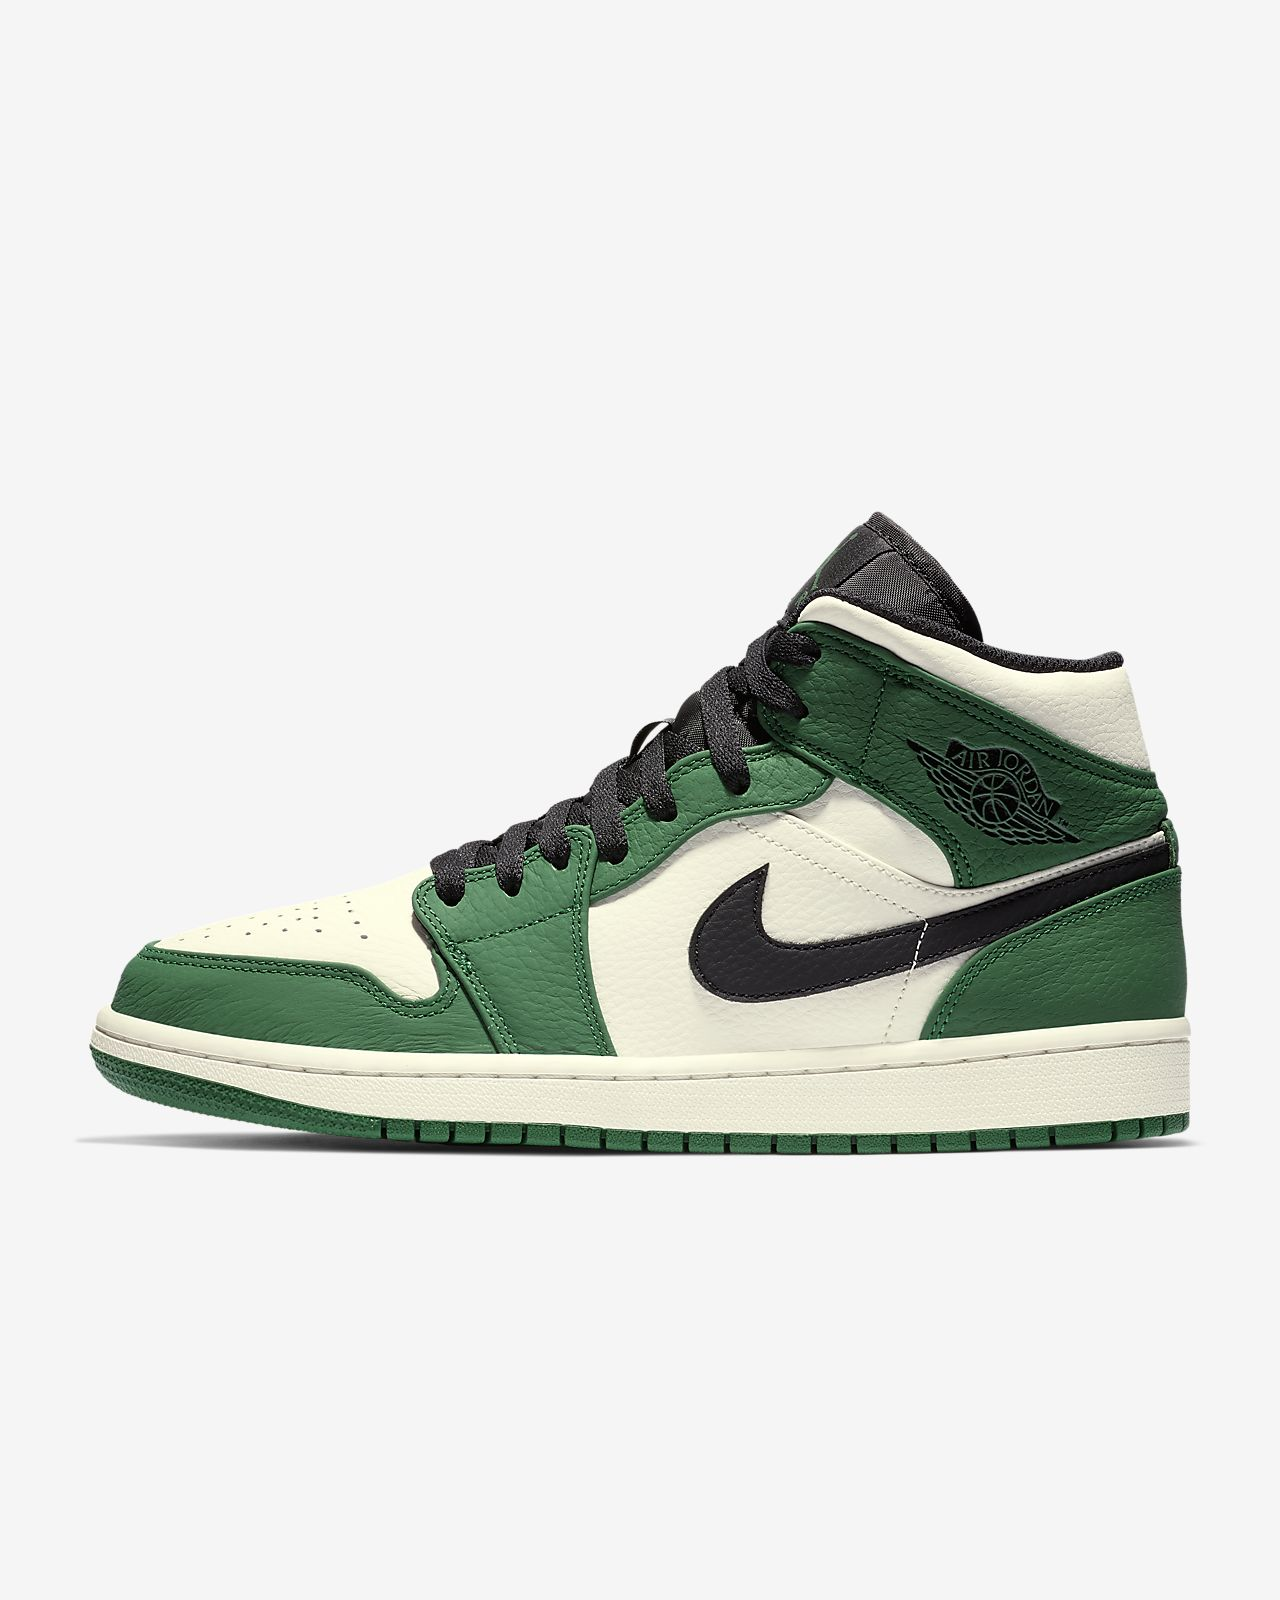 8171e90c6550 Air Jordan 1 Mid SE Men s Shoe. Nike.com